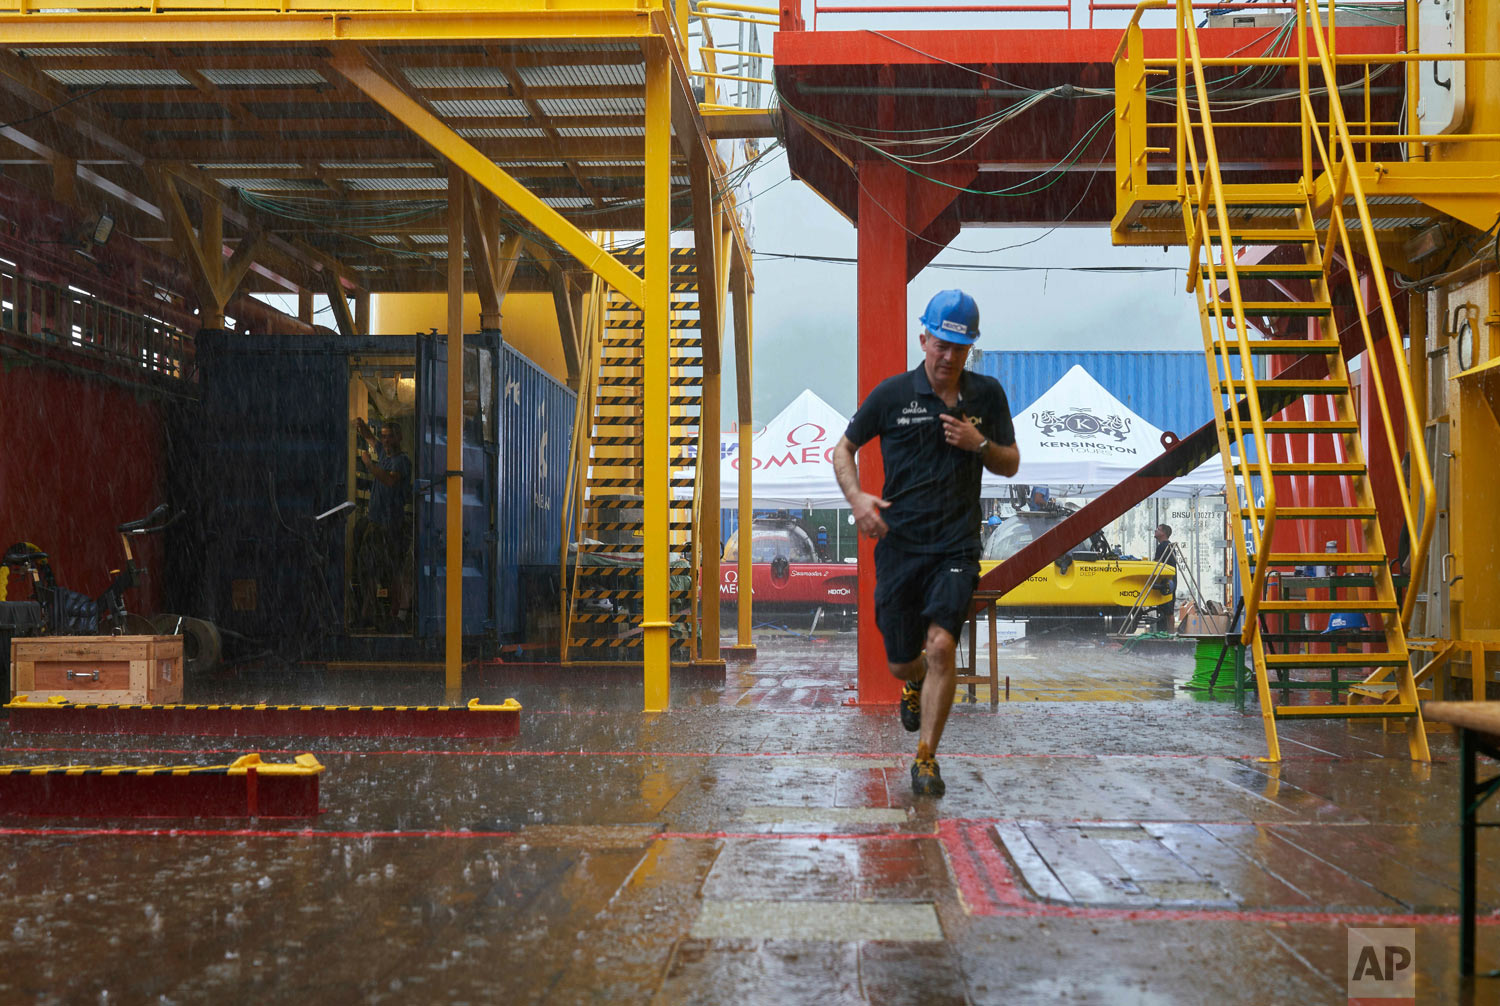 Nekton Mission Director, Oliver Steeds, runs across the deck of the Ocean Zephyr, March 4, 2019, during a rainstorm that momentarily paused preparations for the 7-week long expedition. (AP Photo/David Keyton)